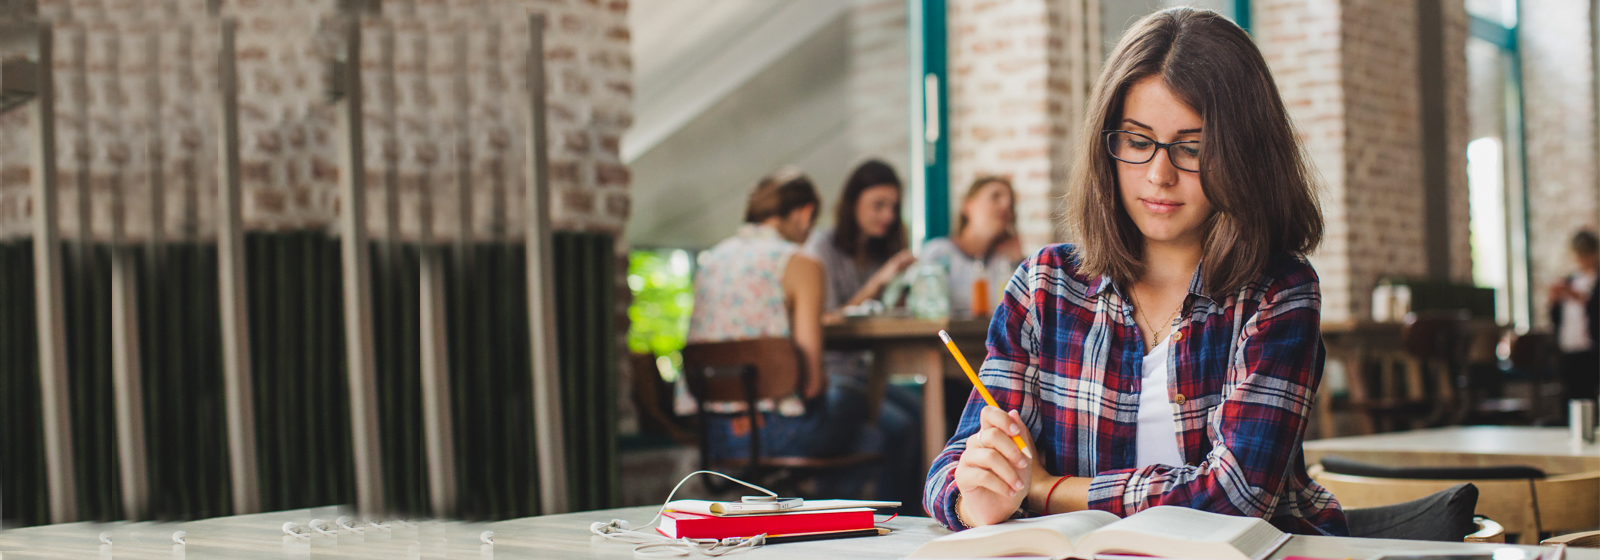 Is Examination the only way to evaluate students?